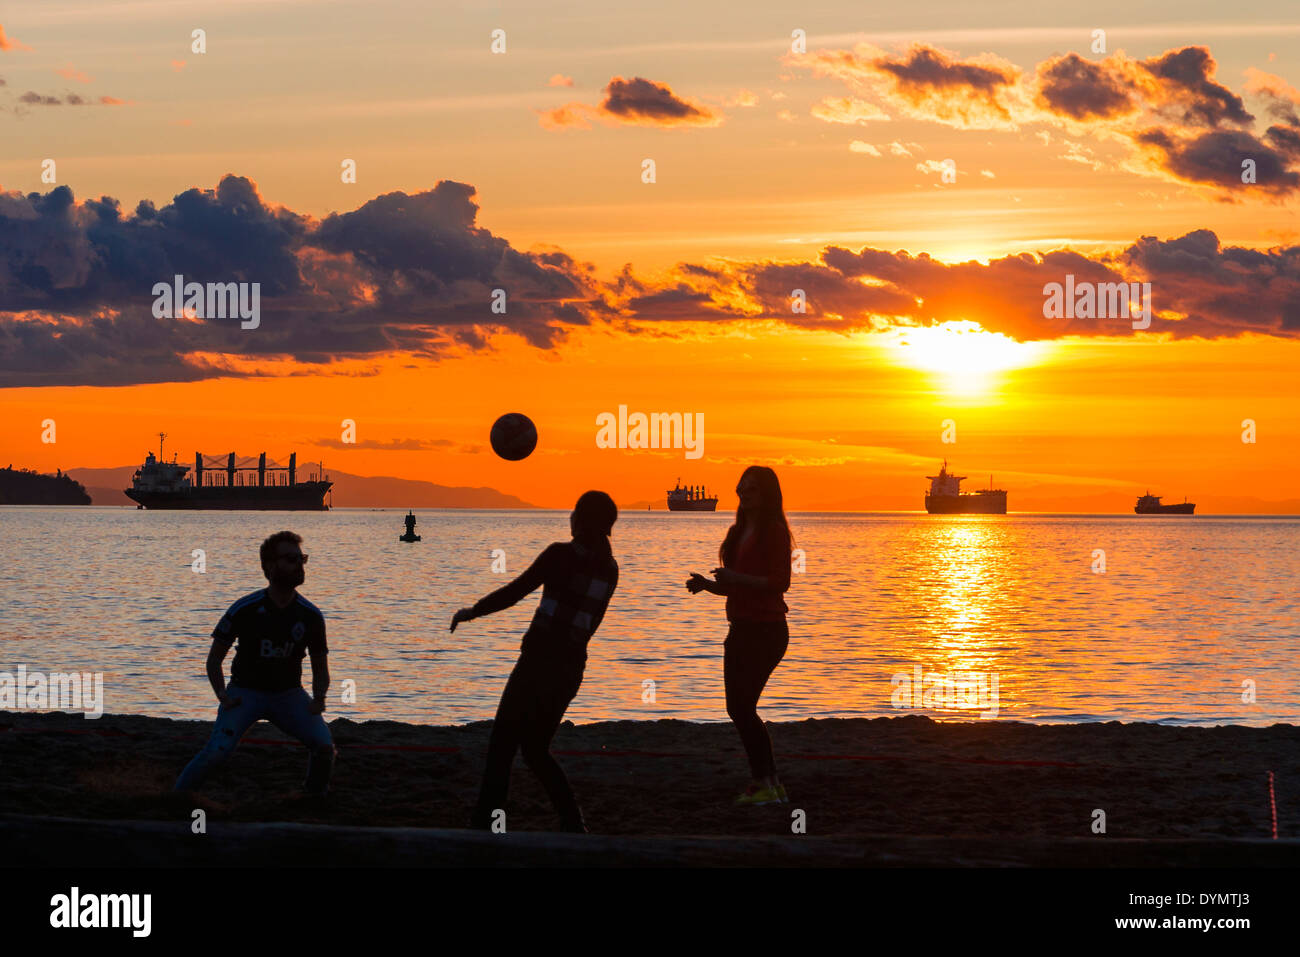 Une partie de beach-volley au coucher du soleil, la plage de la baie English, Vancouver, British Columbia, Canada Photo Stock